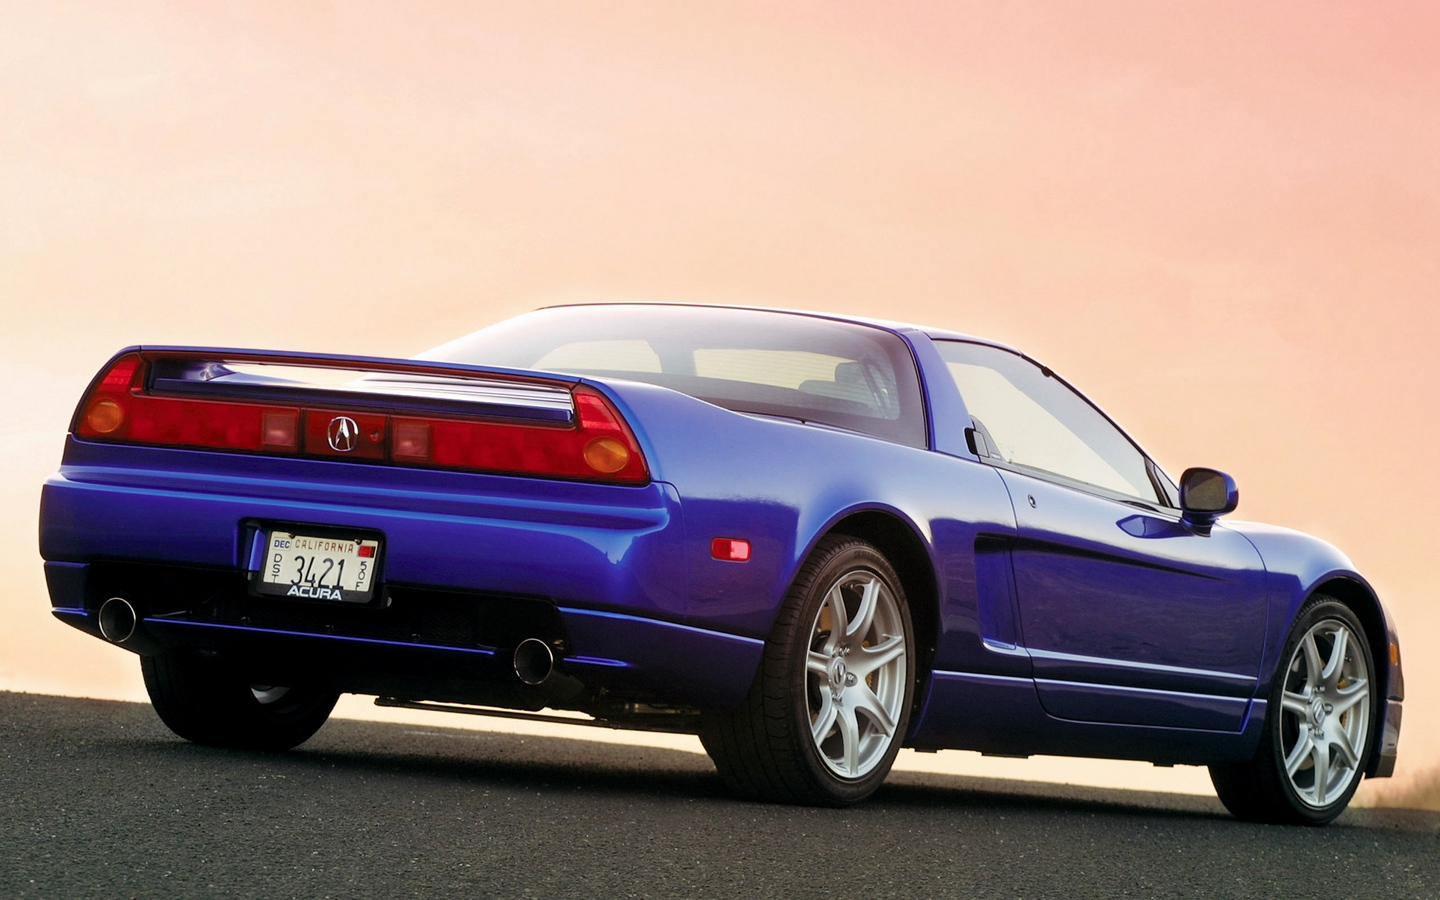 Acura NSX Mugen 2003 acura_nsx_blue_rear_view_style_sports_cars_sunset_13666_1440x900